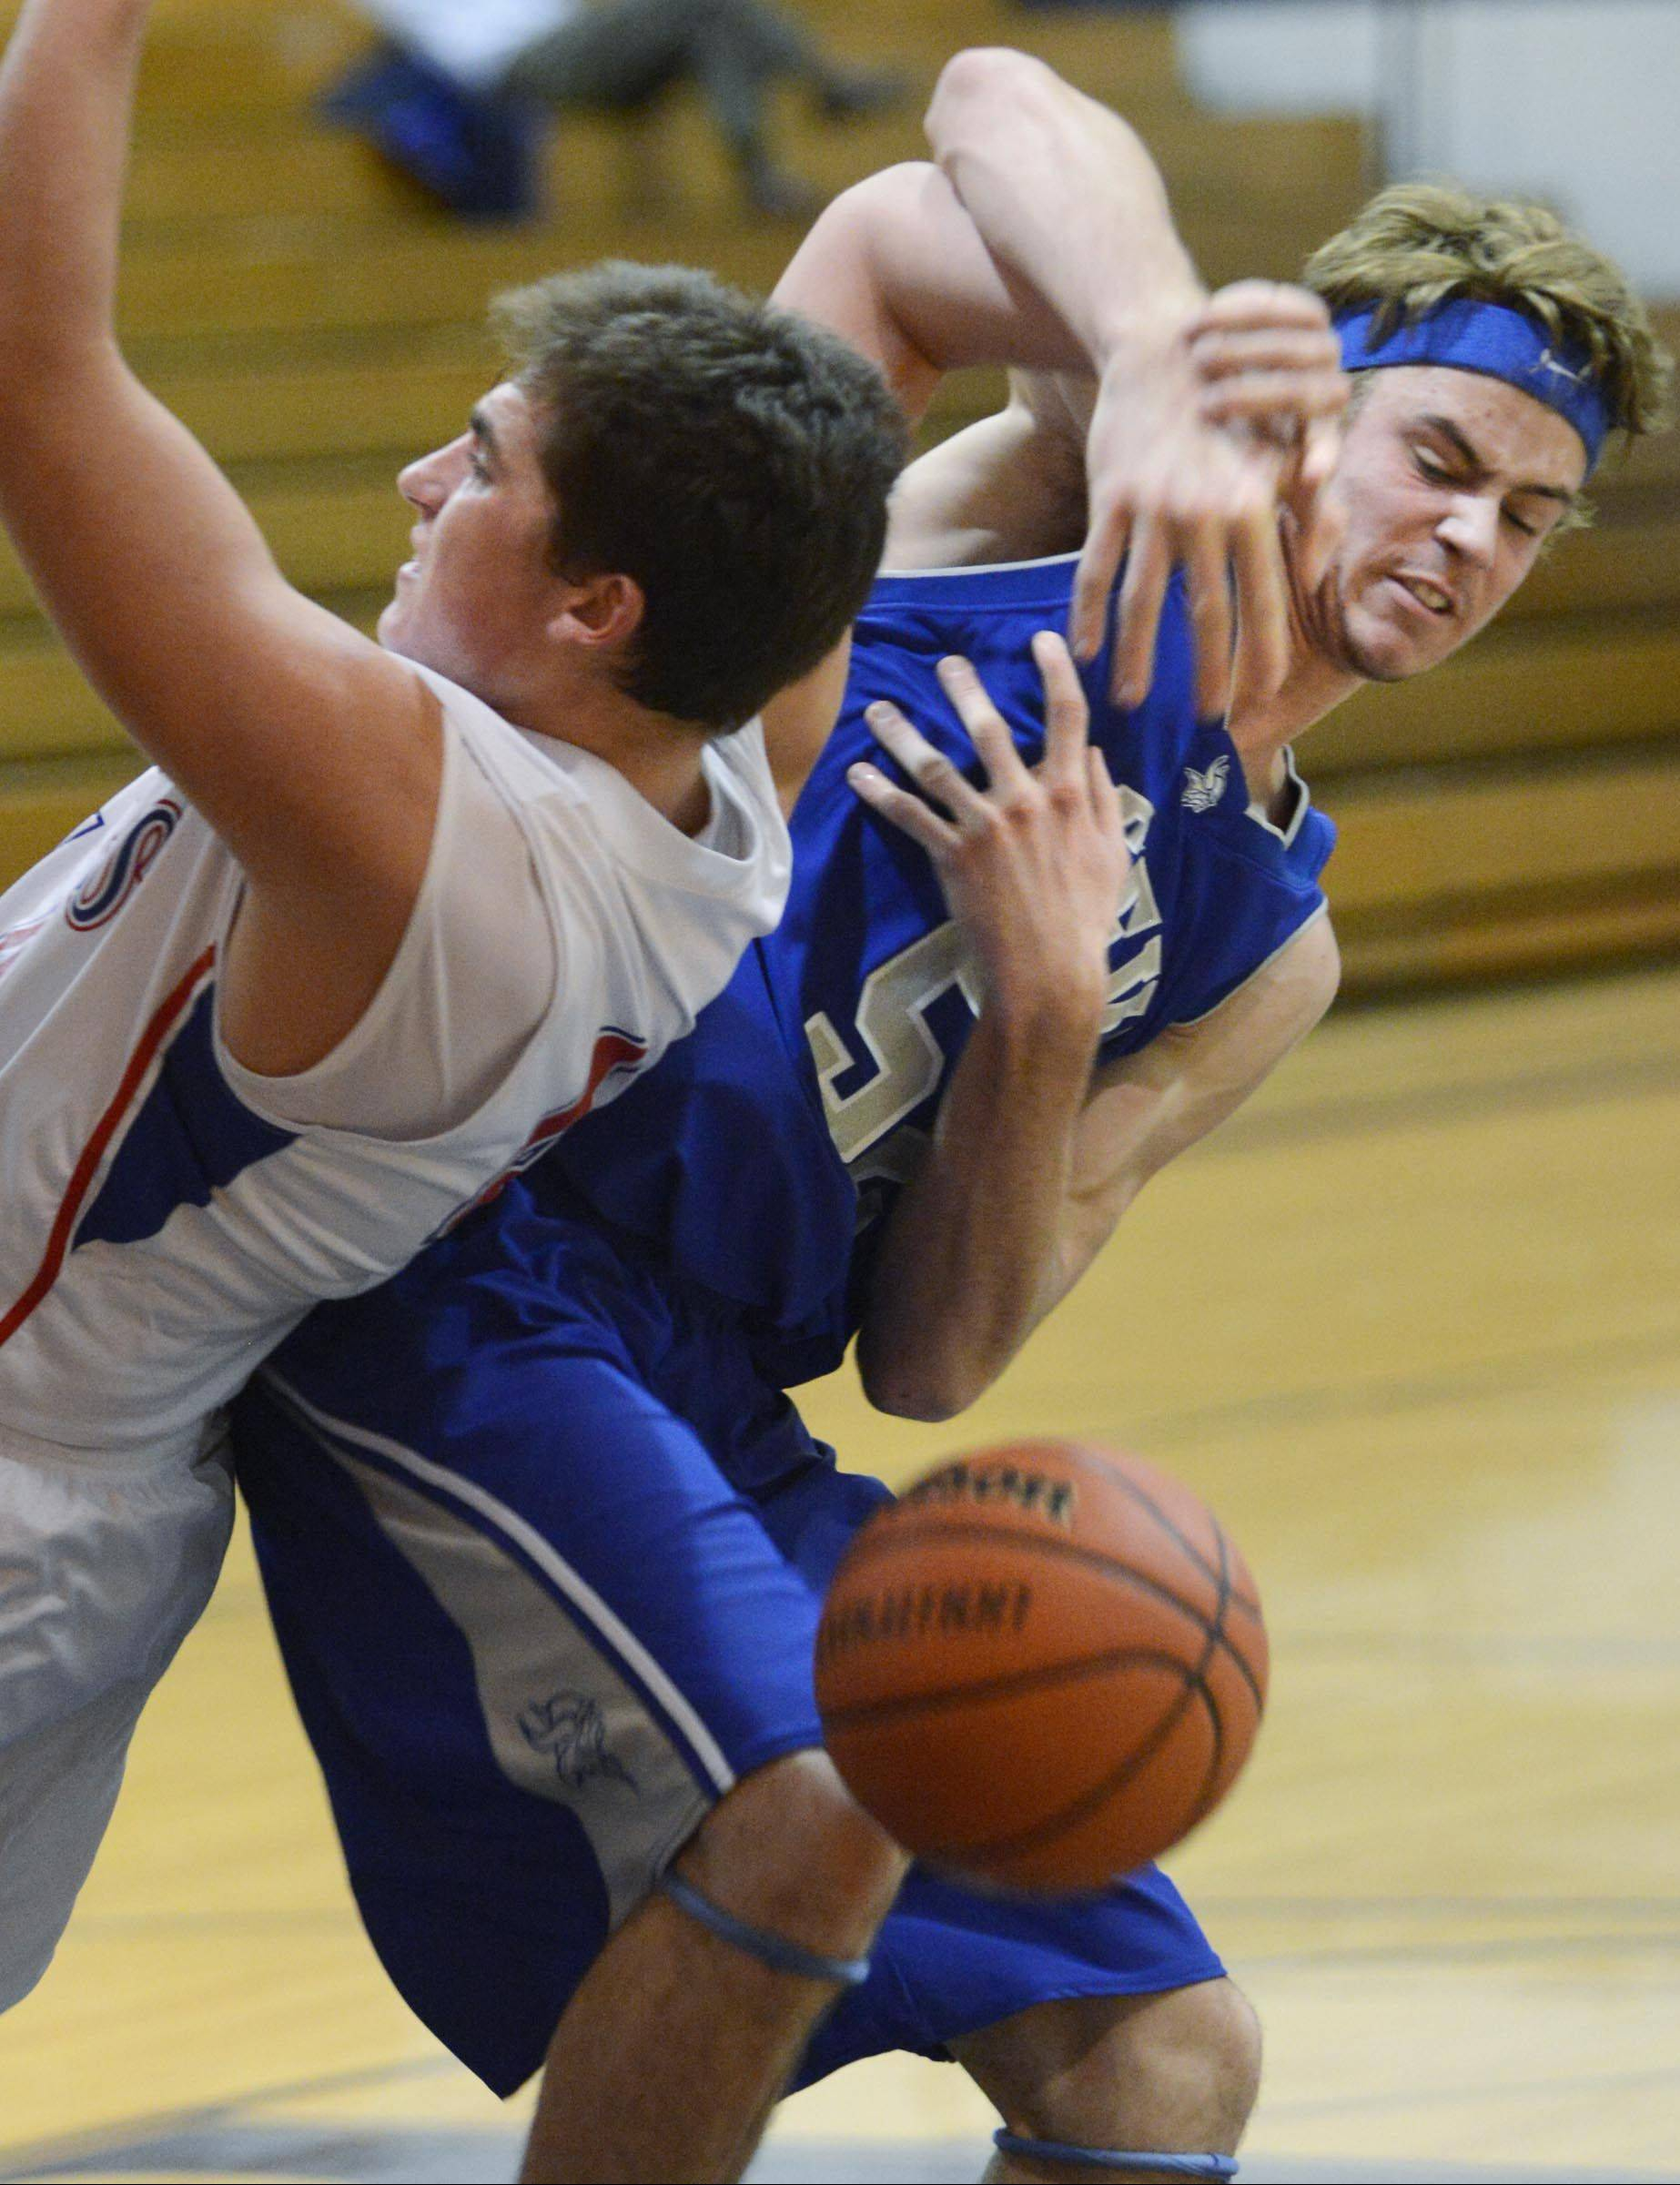 Geneva's Mike Landi and Marmion's Danny Bicknell get tangled under the basket Monday.